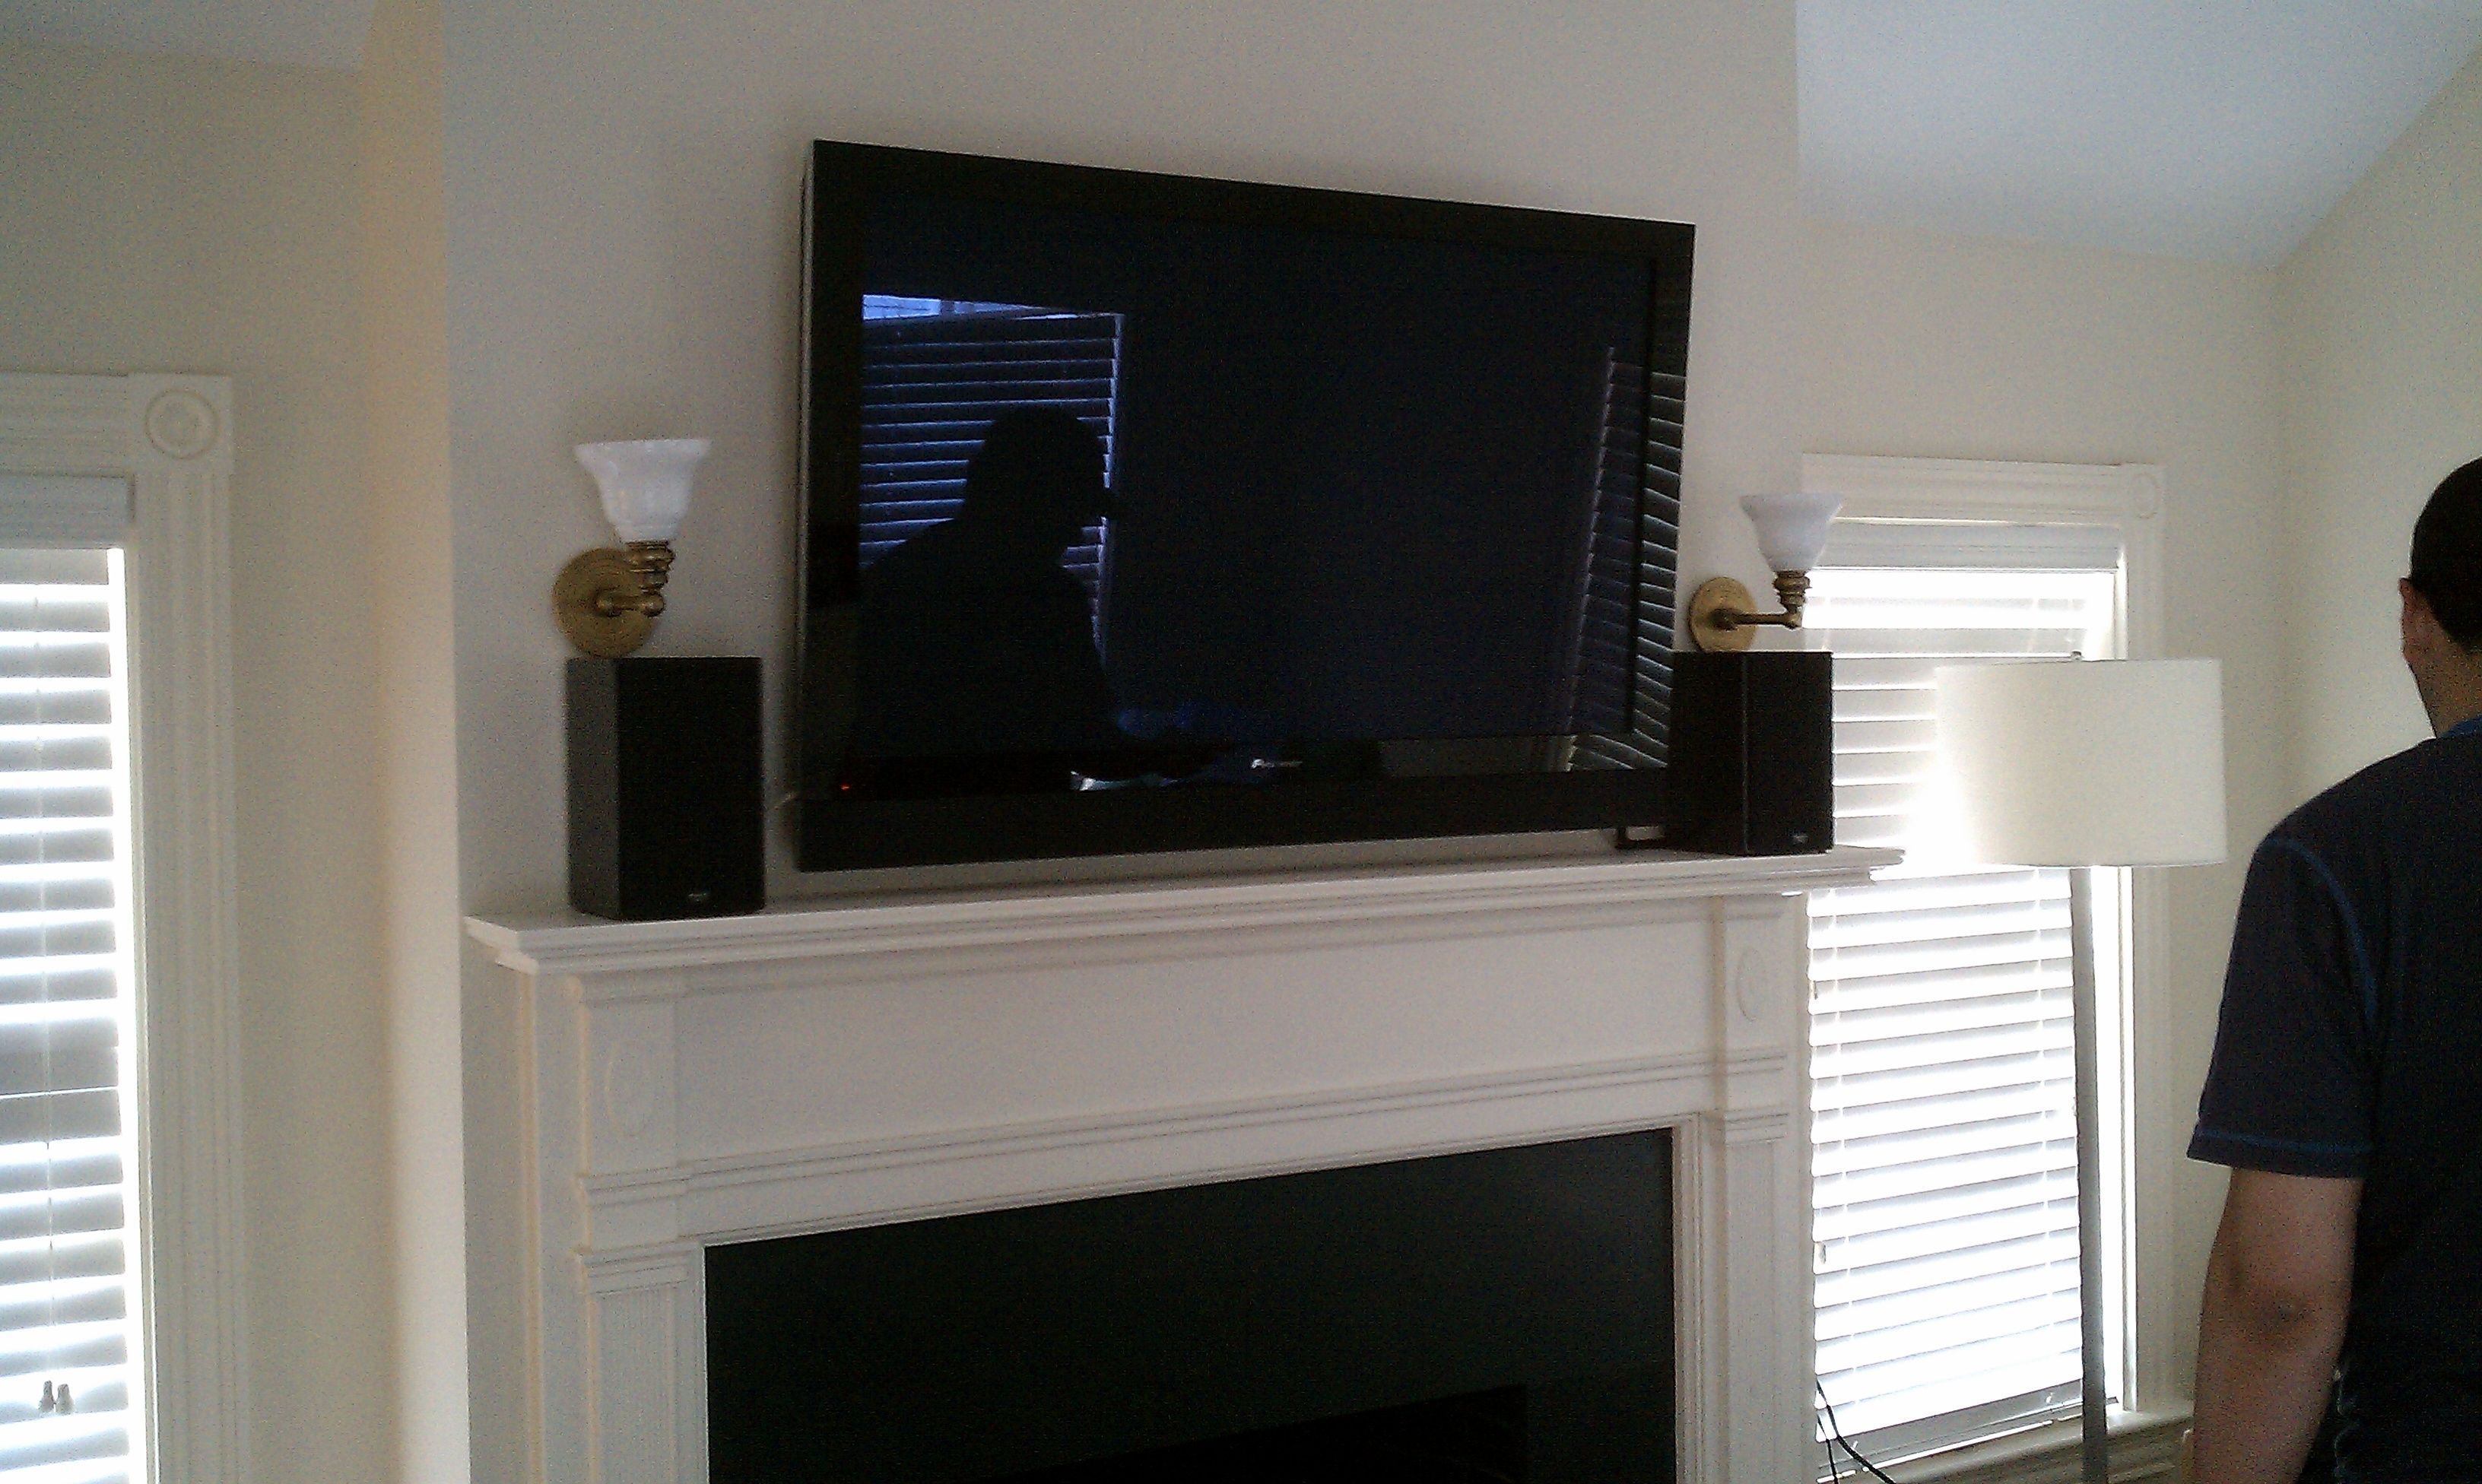 Mounting A Tv On A Plaster Wall Plaster Walls Tv Above Fireplace Plaster